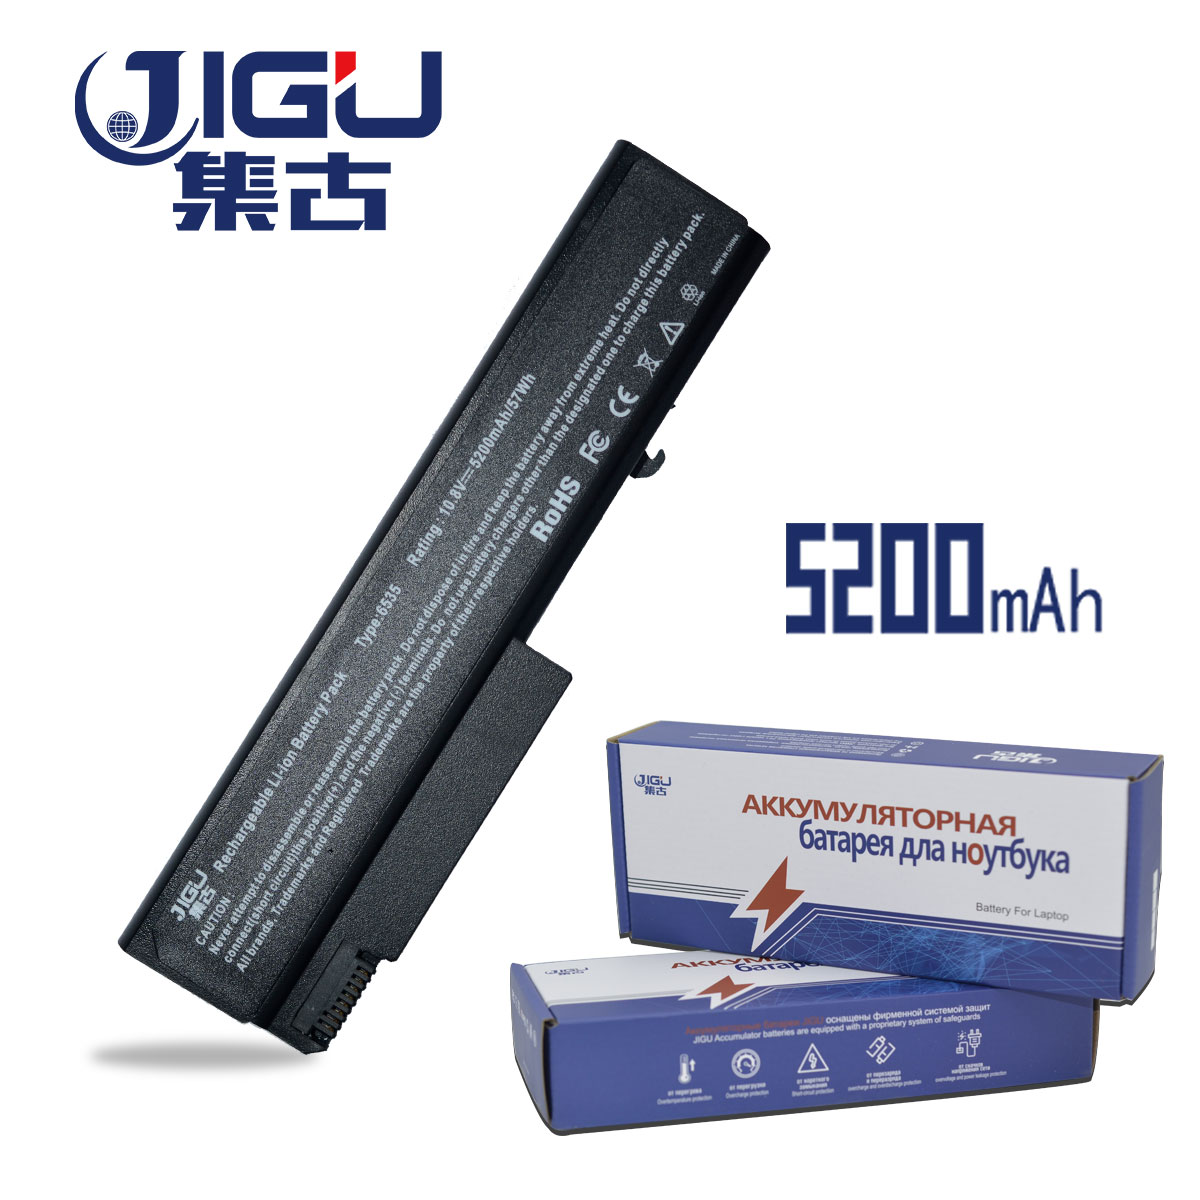 JIGU Laptop Battery For HP ProBook 6550b 6555b For Hp Compaq Business Notebook 6530b 6535B 6730B 6735B 6 Cells generic new black laptop us keyboard for hp compaq 6530b 6535b series replacement parts